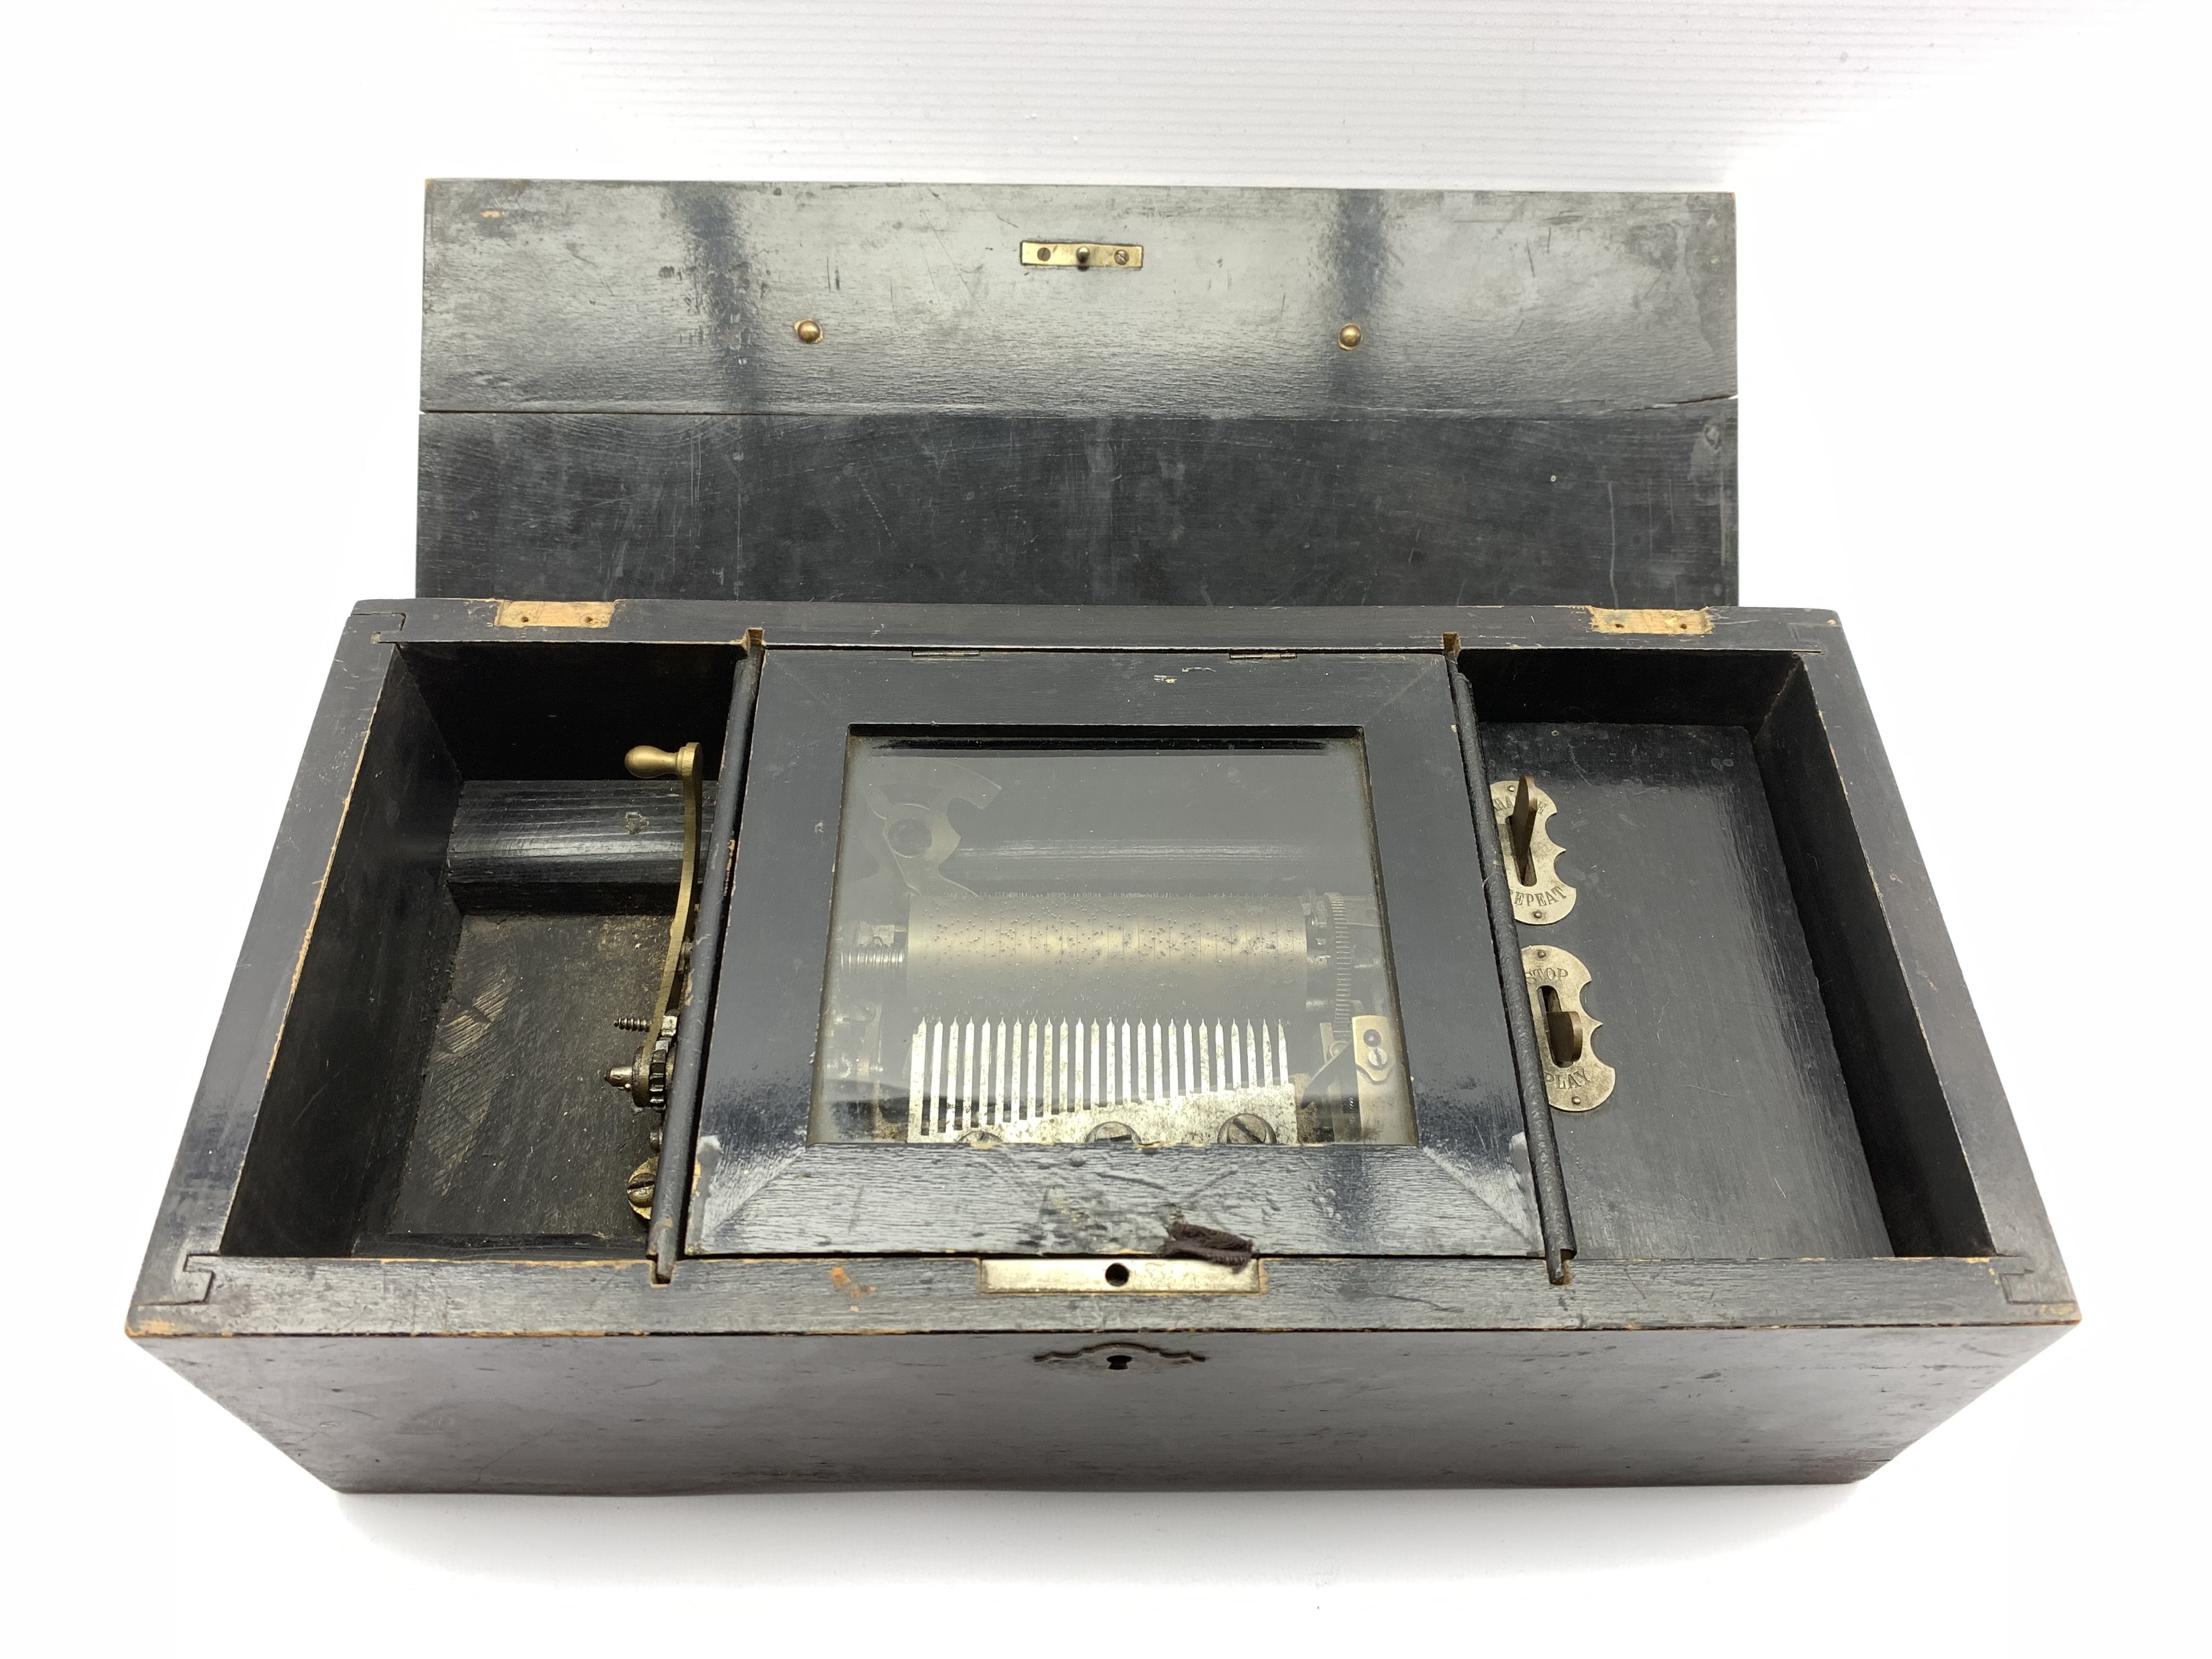 Late 19th Century Swiss eight air musical box with comb and cylinder movement, cylinder 10cm long in - Image 5 of 7